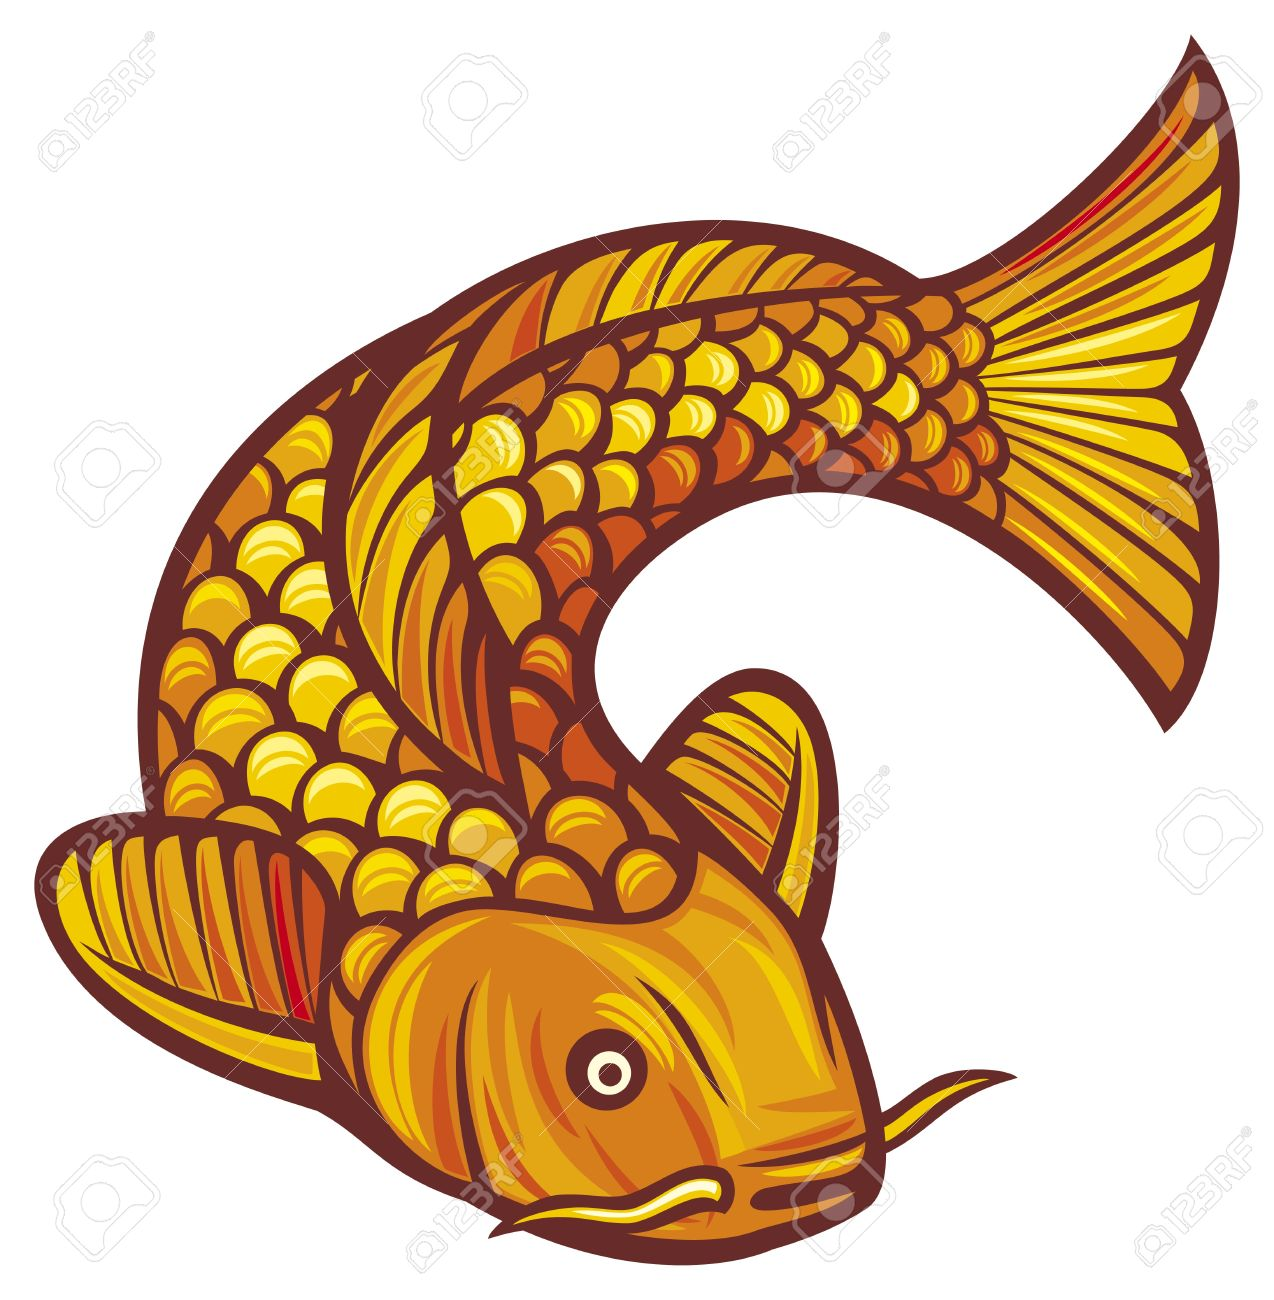 Koi clipart clipground for Koi fish vector